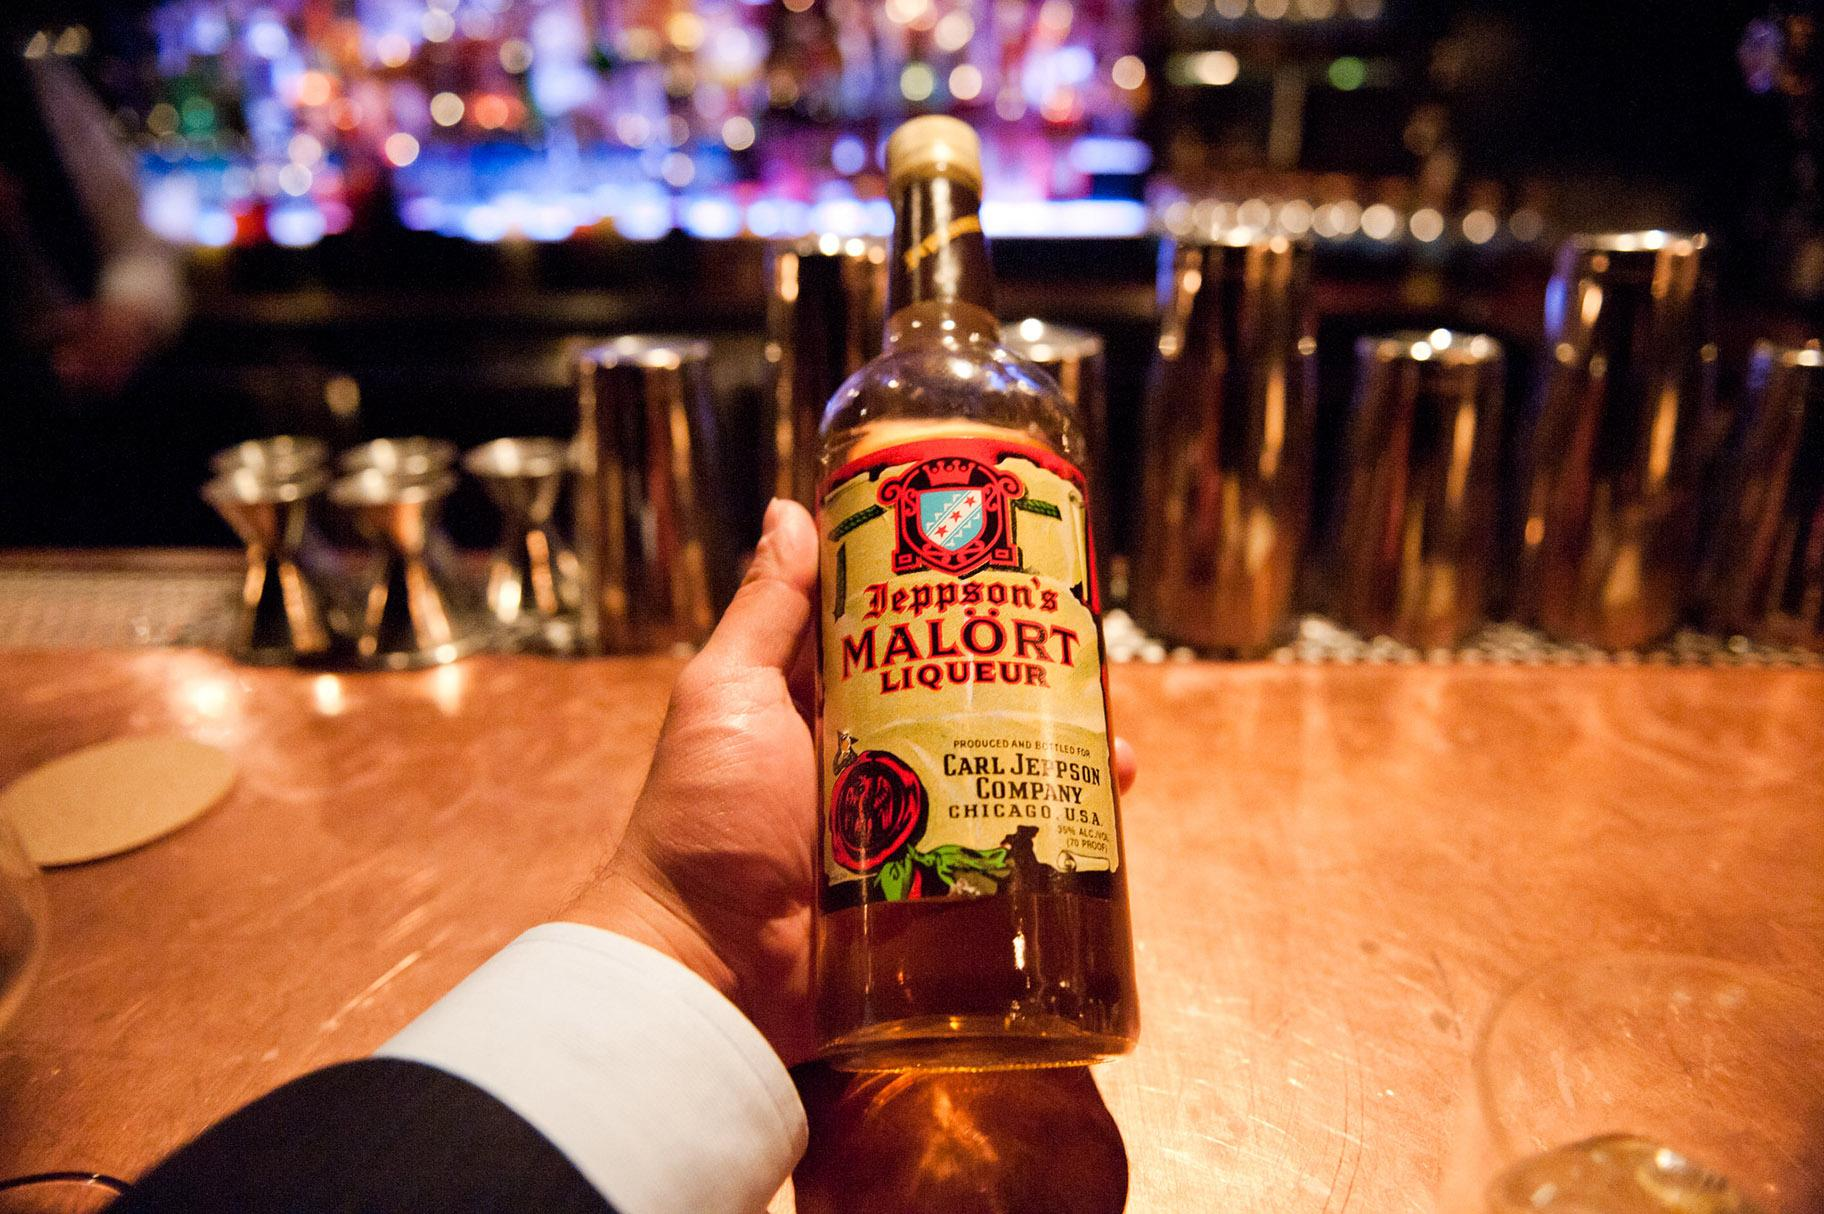 Malort – Chicago's most infamous liquor – makes our 2019 holiday gifts list. (star5112 / Flickr)